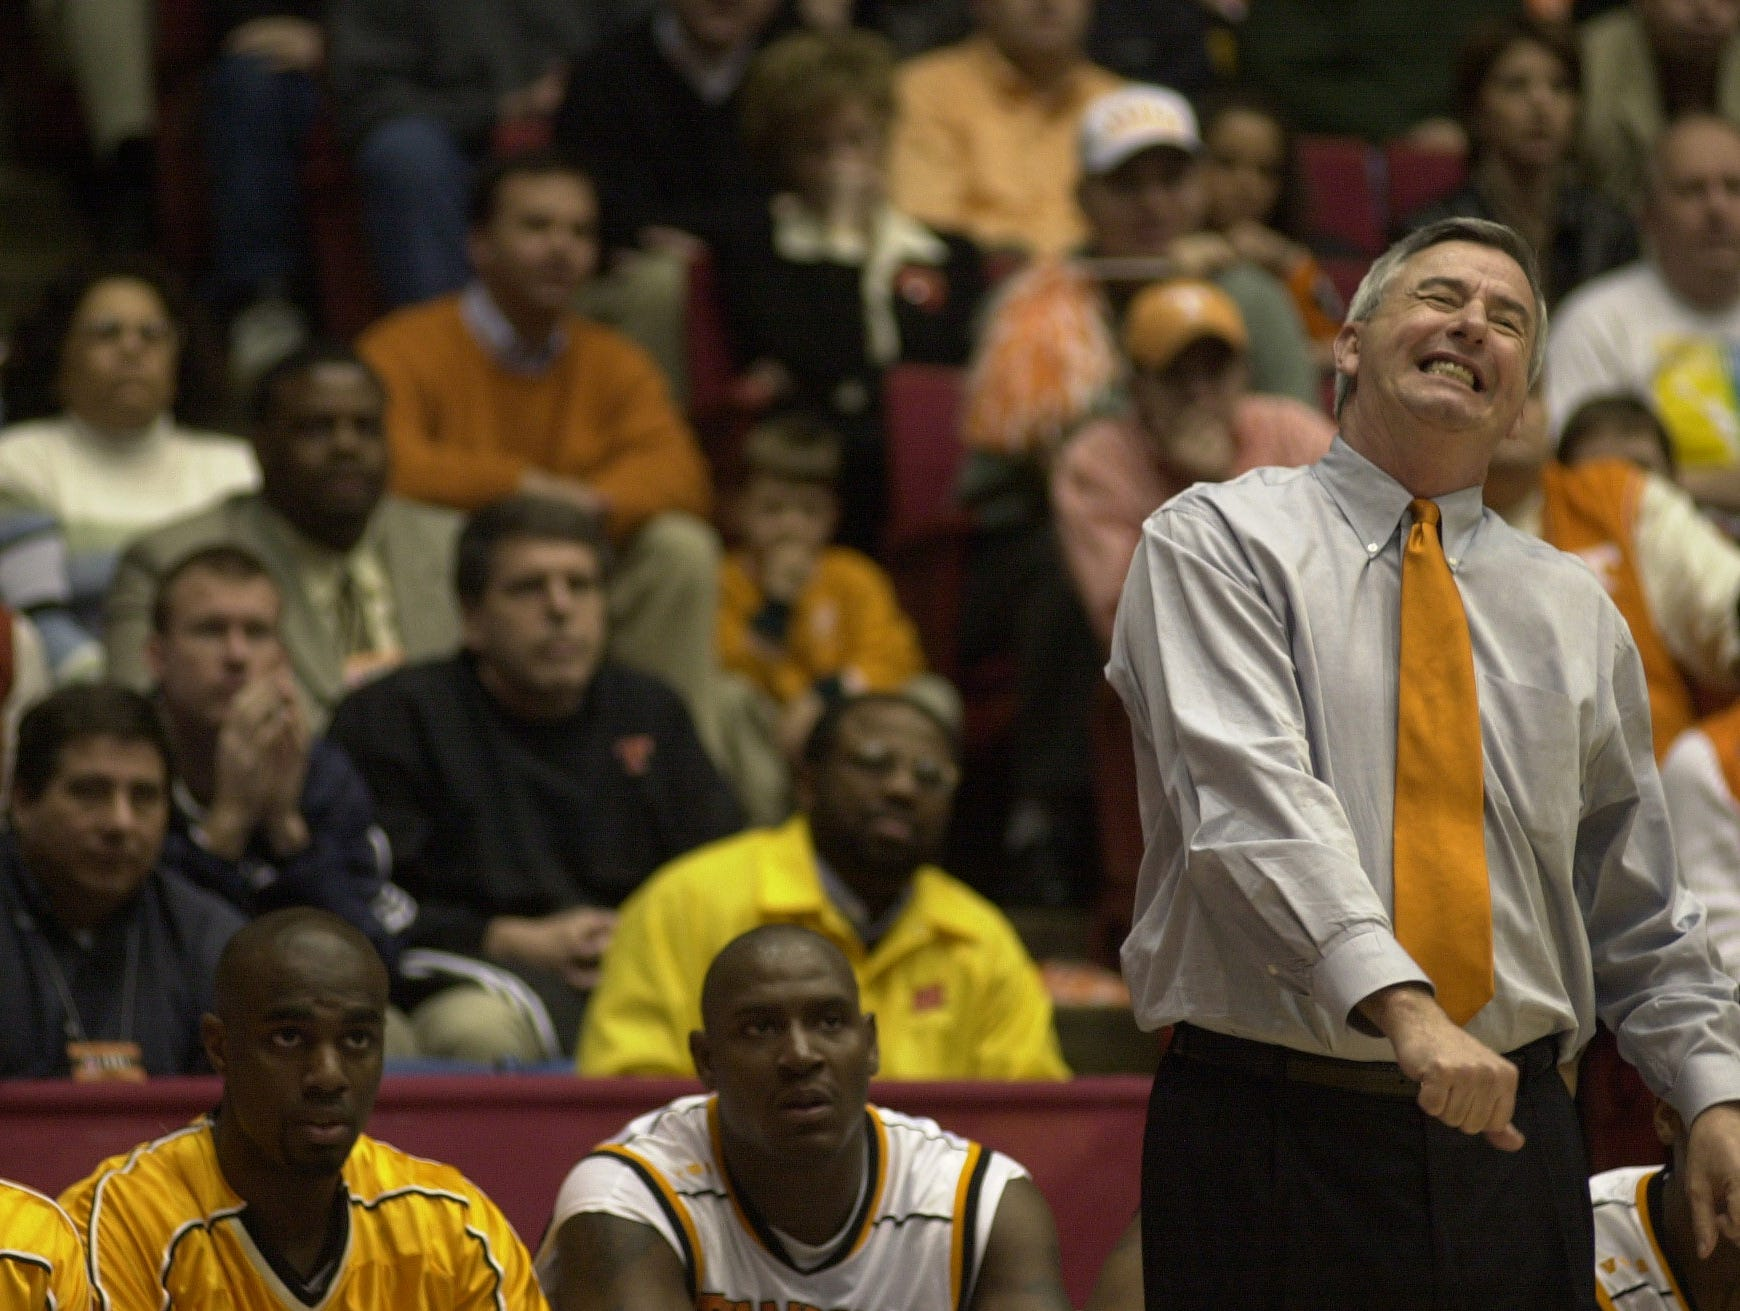 UT head coach Jerry Green reacts to a missed free throw by Ron Slay during their game against Charlotte at the University of Dayton on Friday. The Vols lost 70-63. 2001